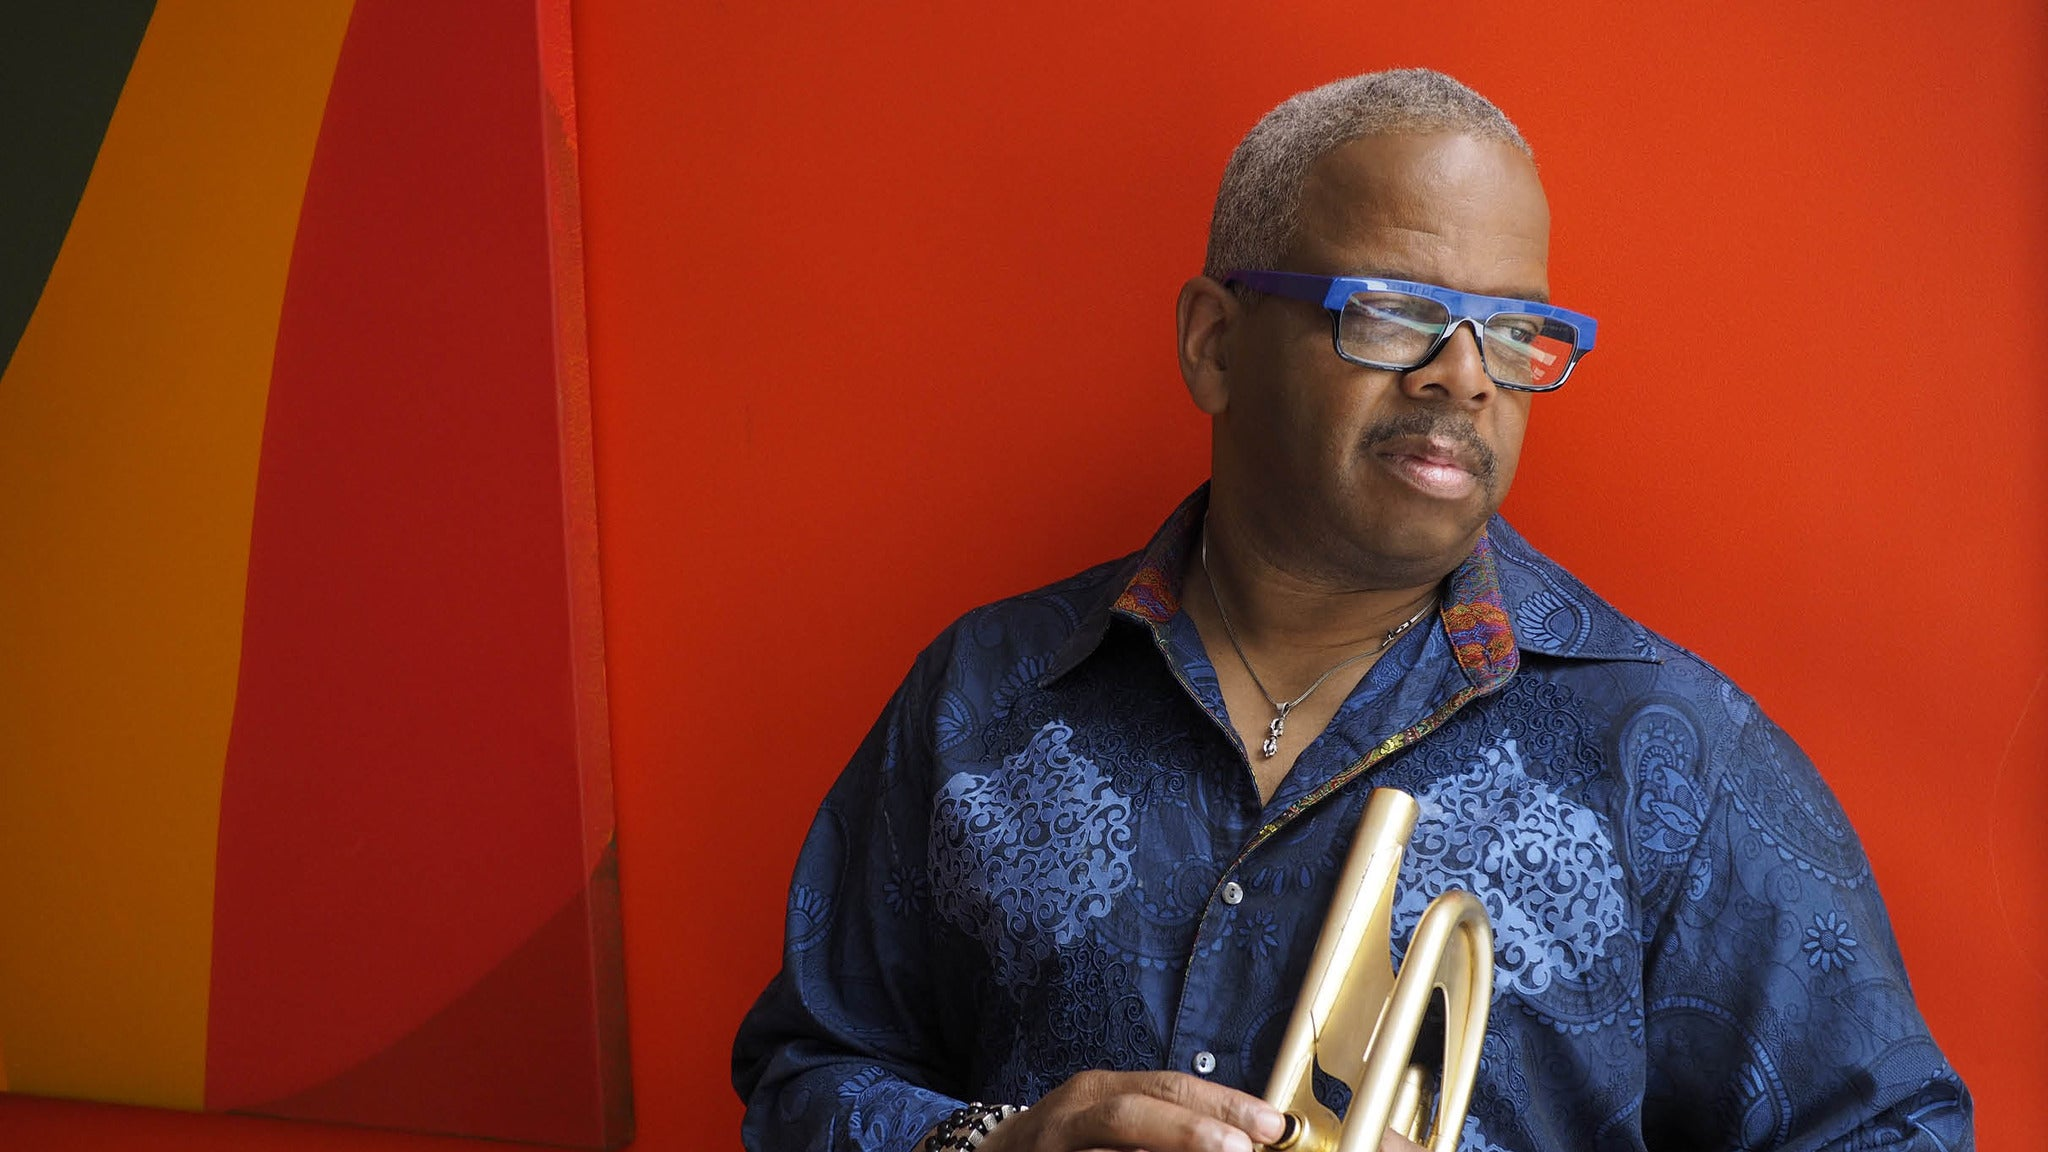 Terence Blanchard at Lincoln Theatre